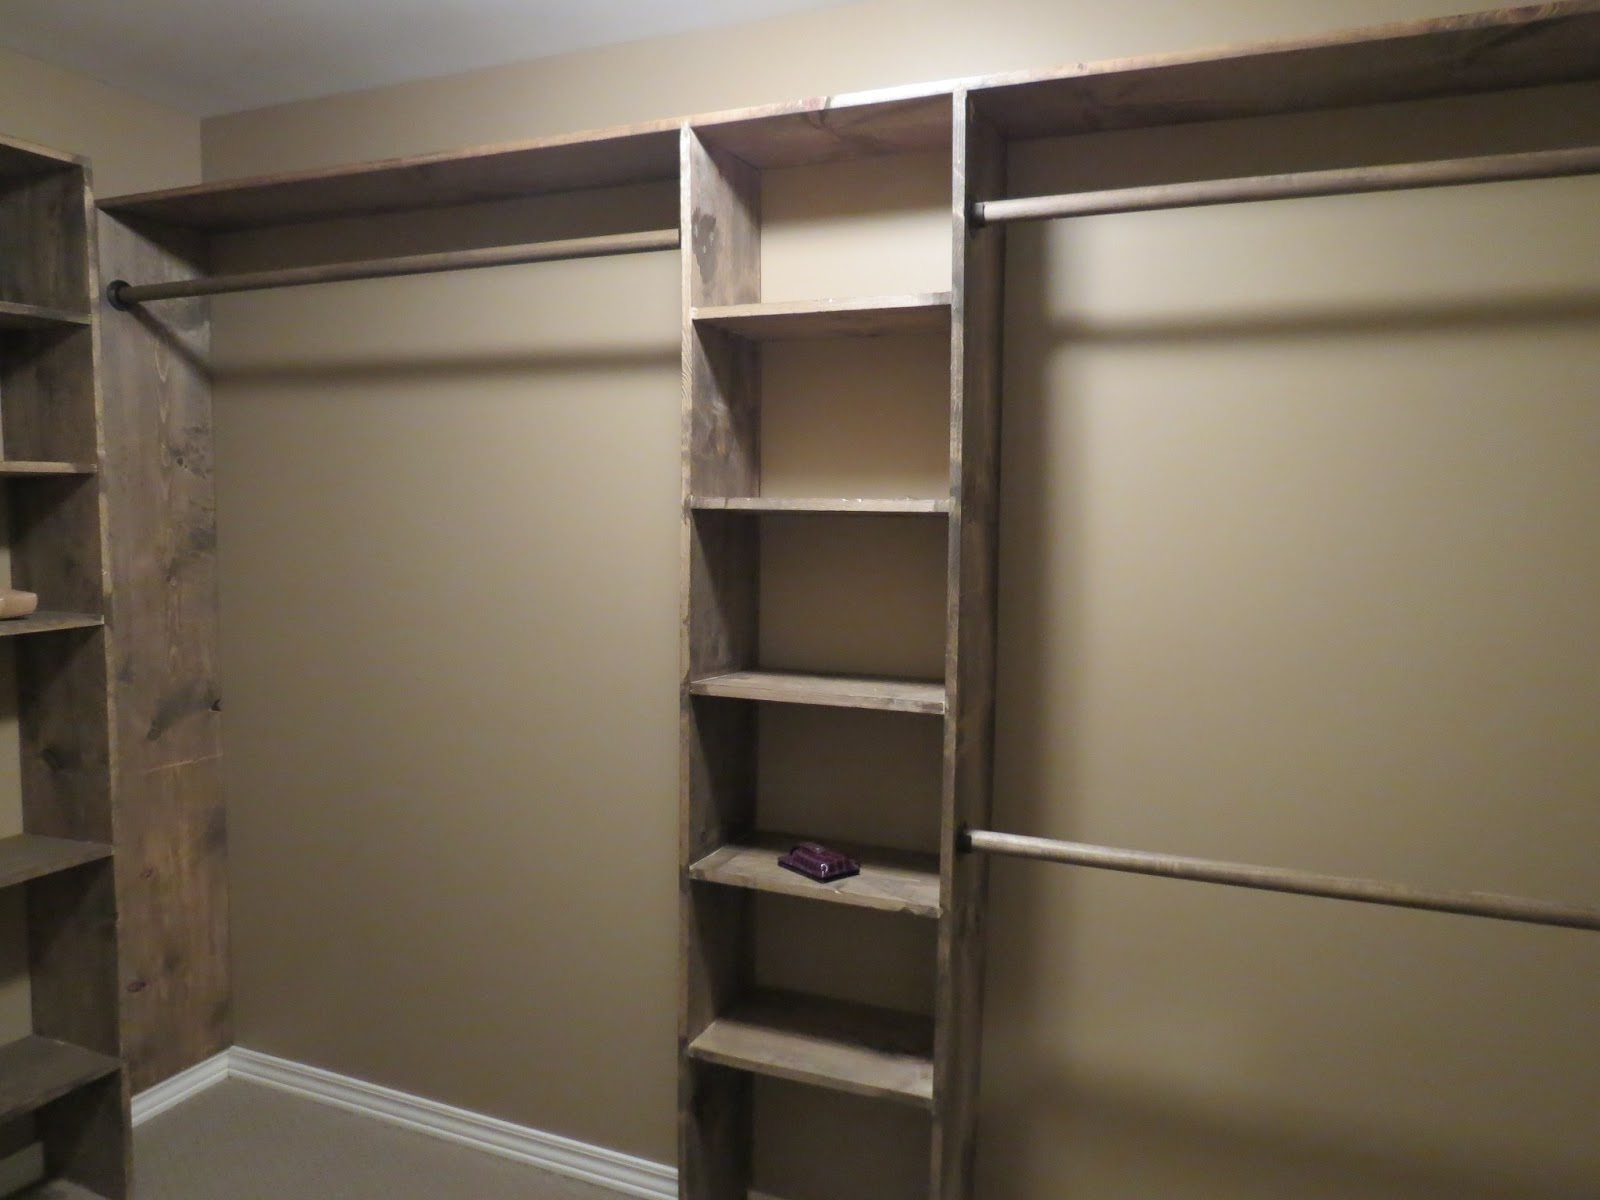 Diy Organization Ideas For Closets Let 39s Just Build A House Walk In Closets No More Living